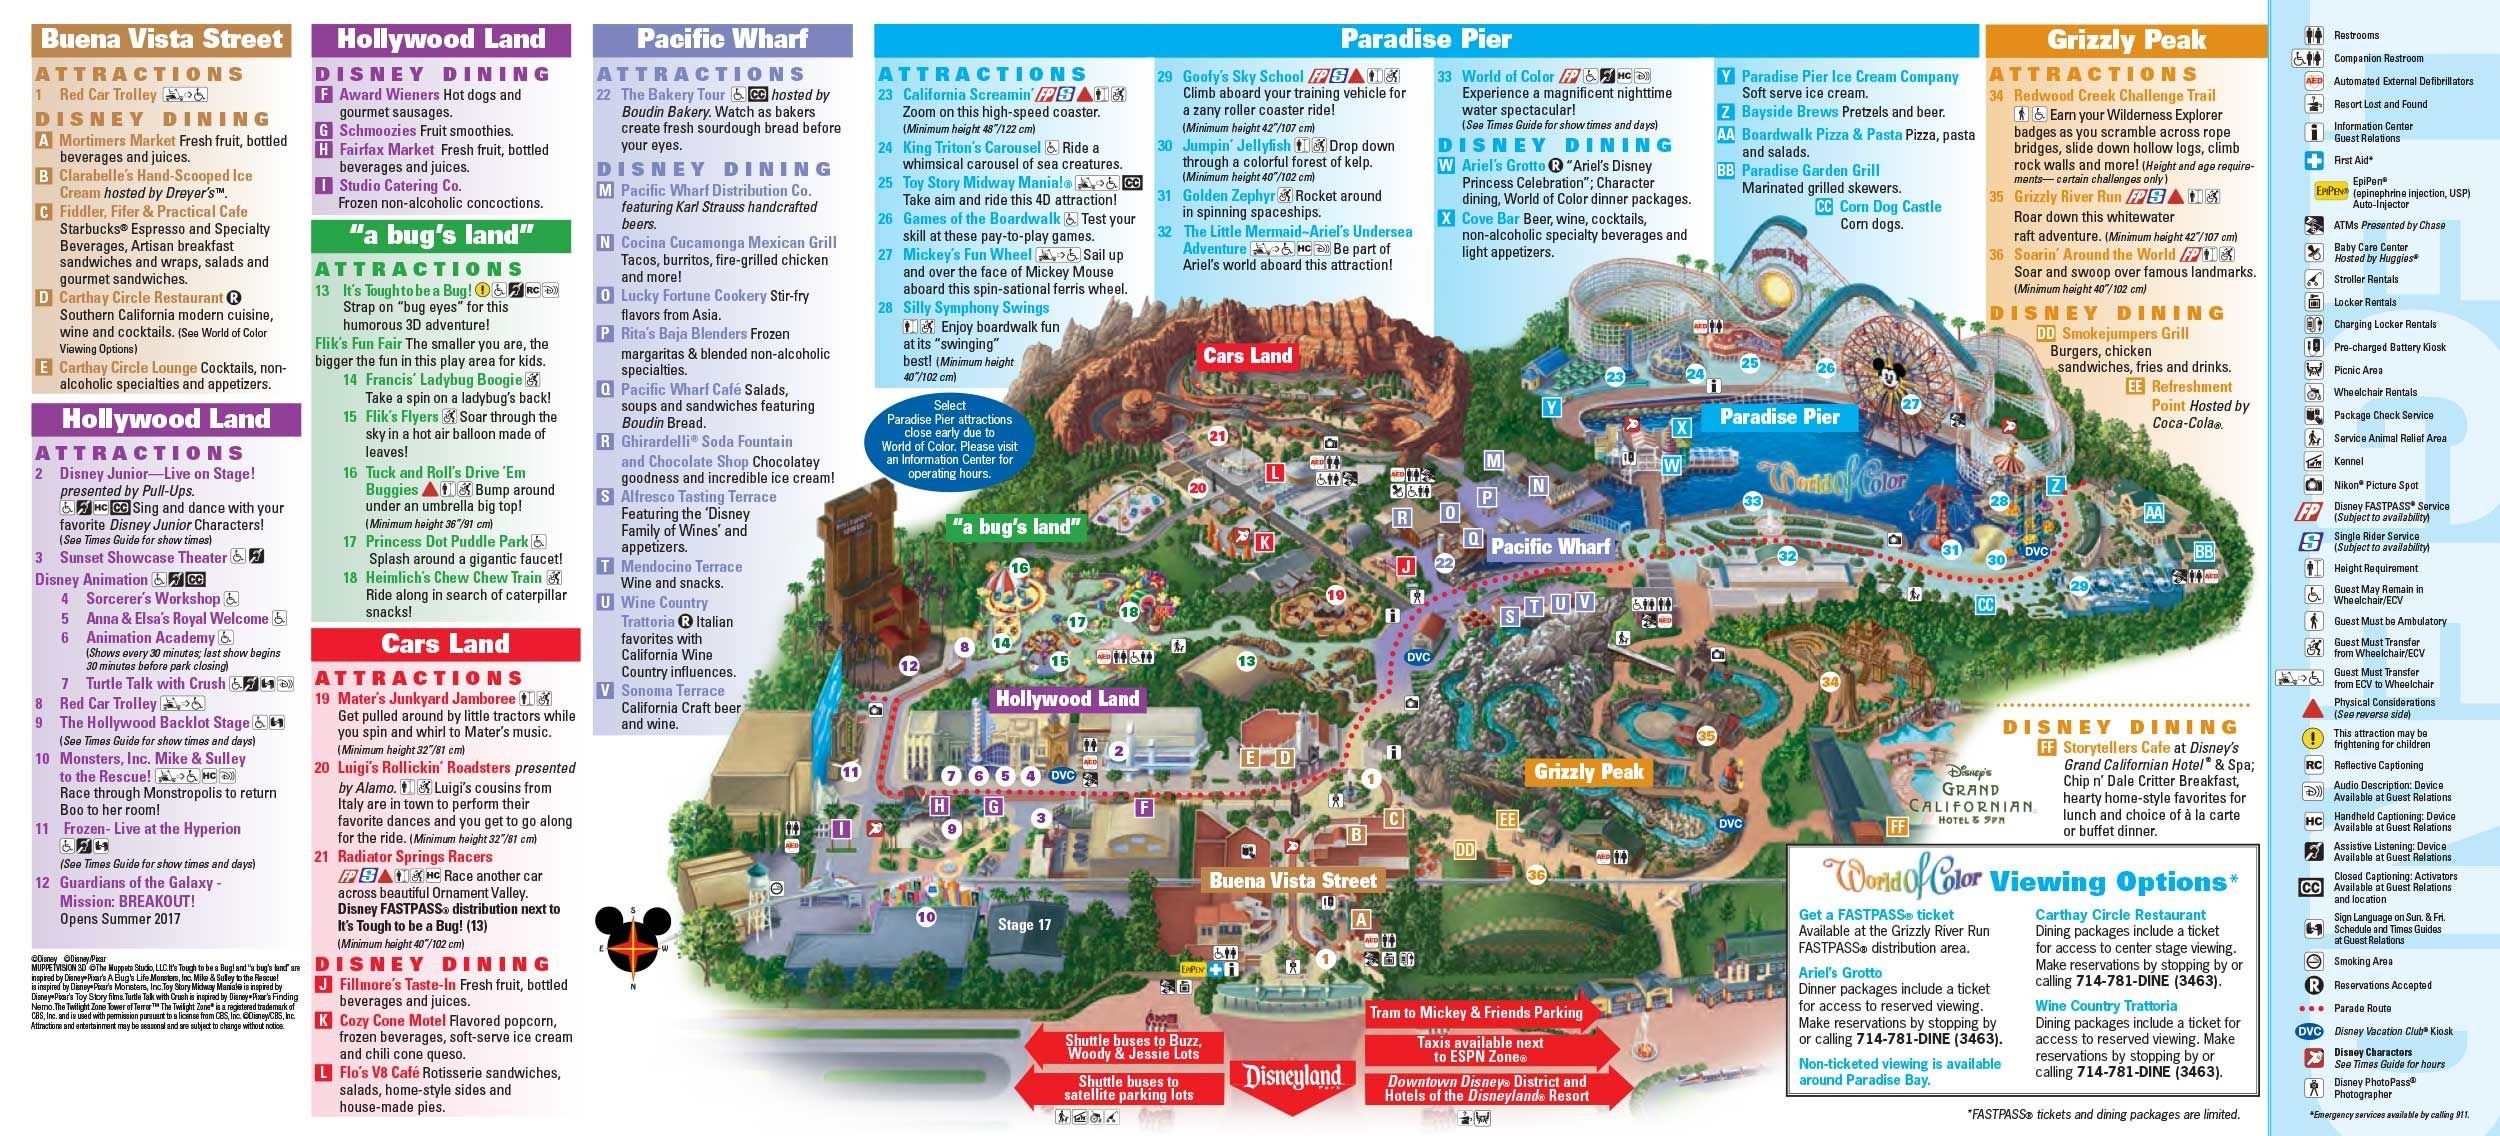 Disneyland Park Map In California Map Disneyland within Printable Disney Maps